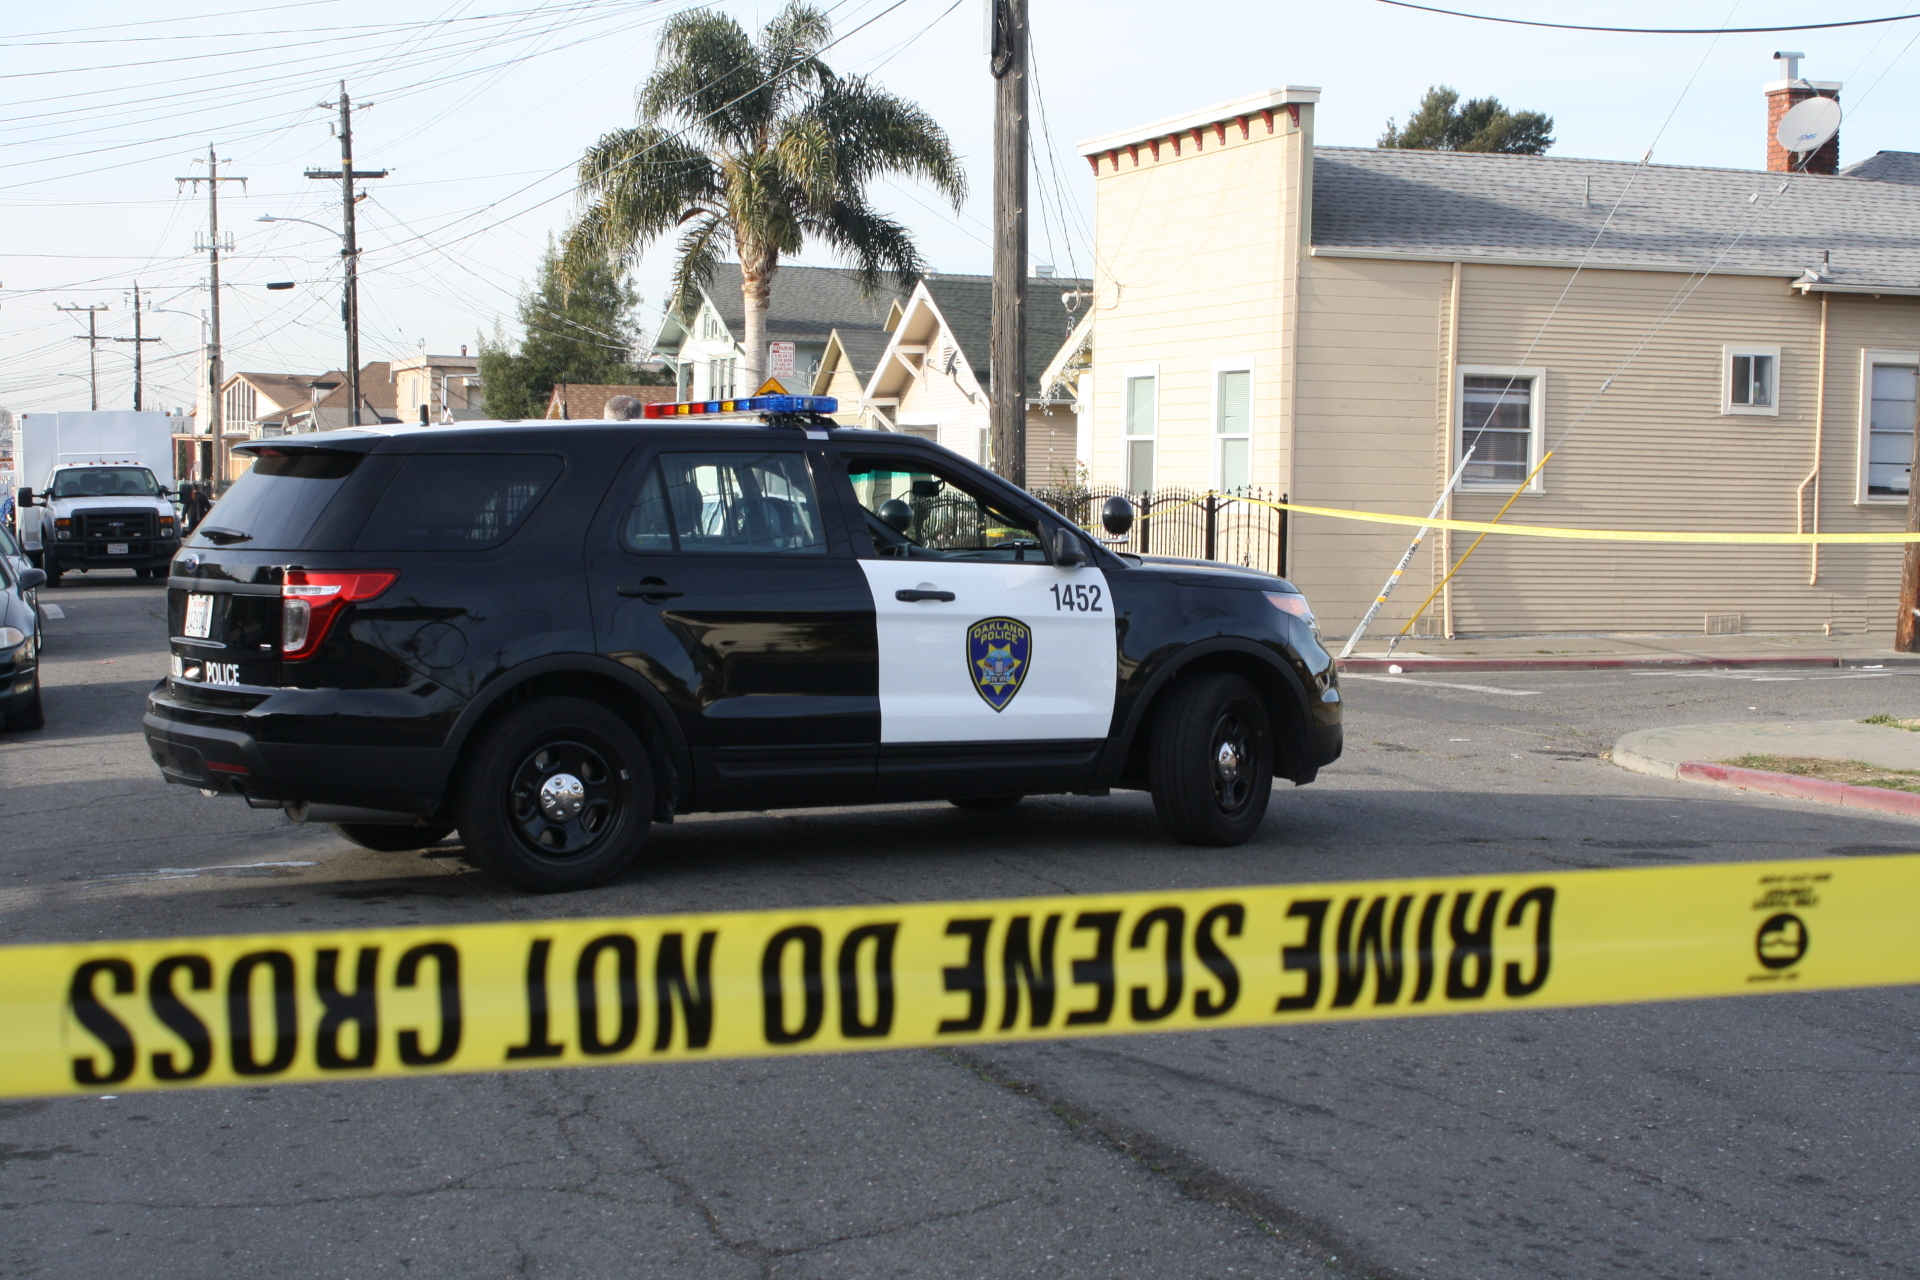 California consistently ranks first among U.S. states in the number of civilians killed by law enforcement.